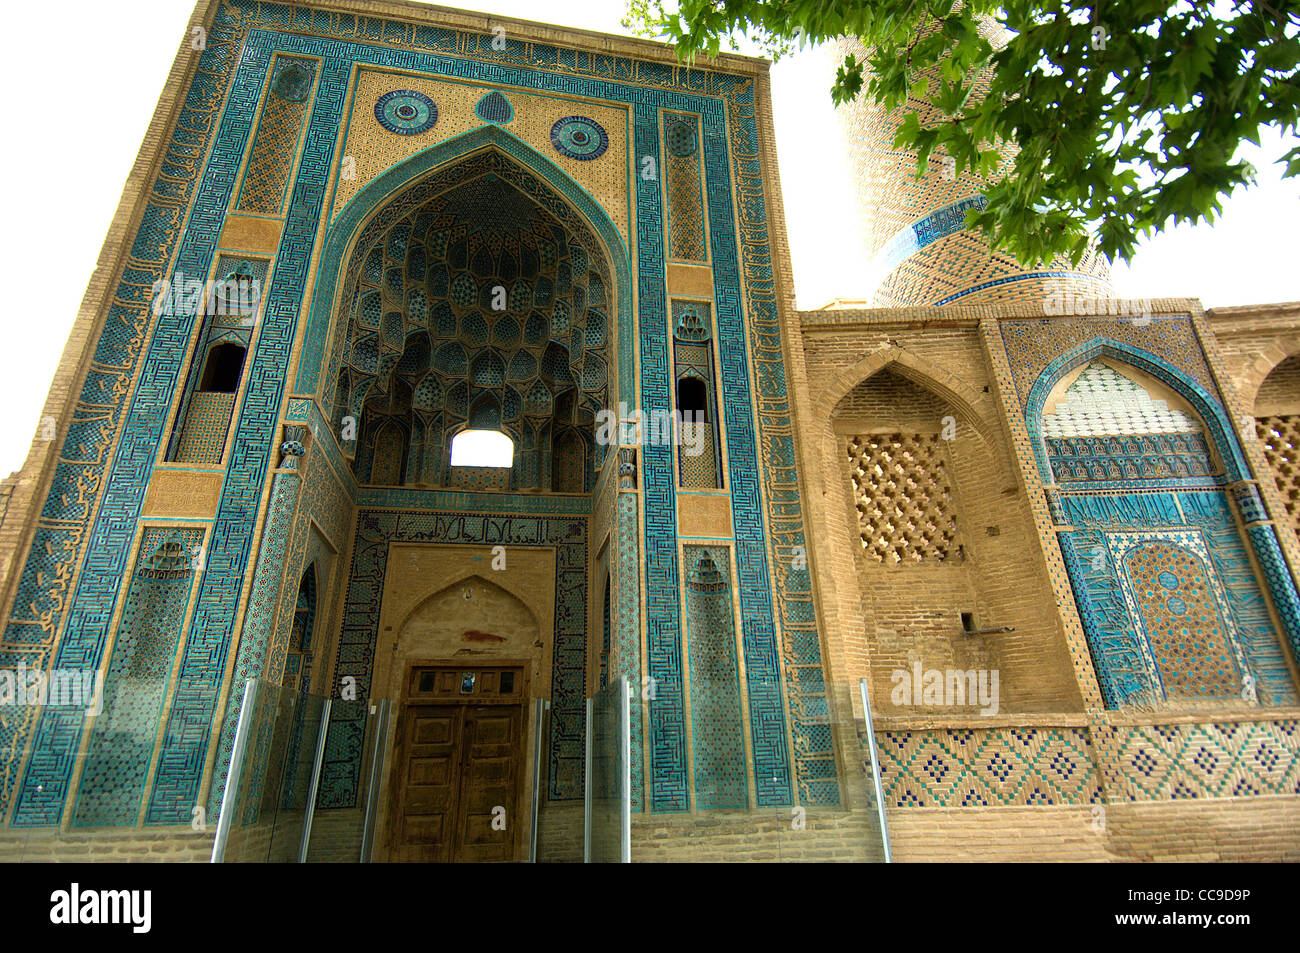 The Jameh (Friday) Mosque in Natanz, Iran is well-known for its unusually high entrance portal and its unusual calligraphy. - Stock Image